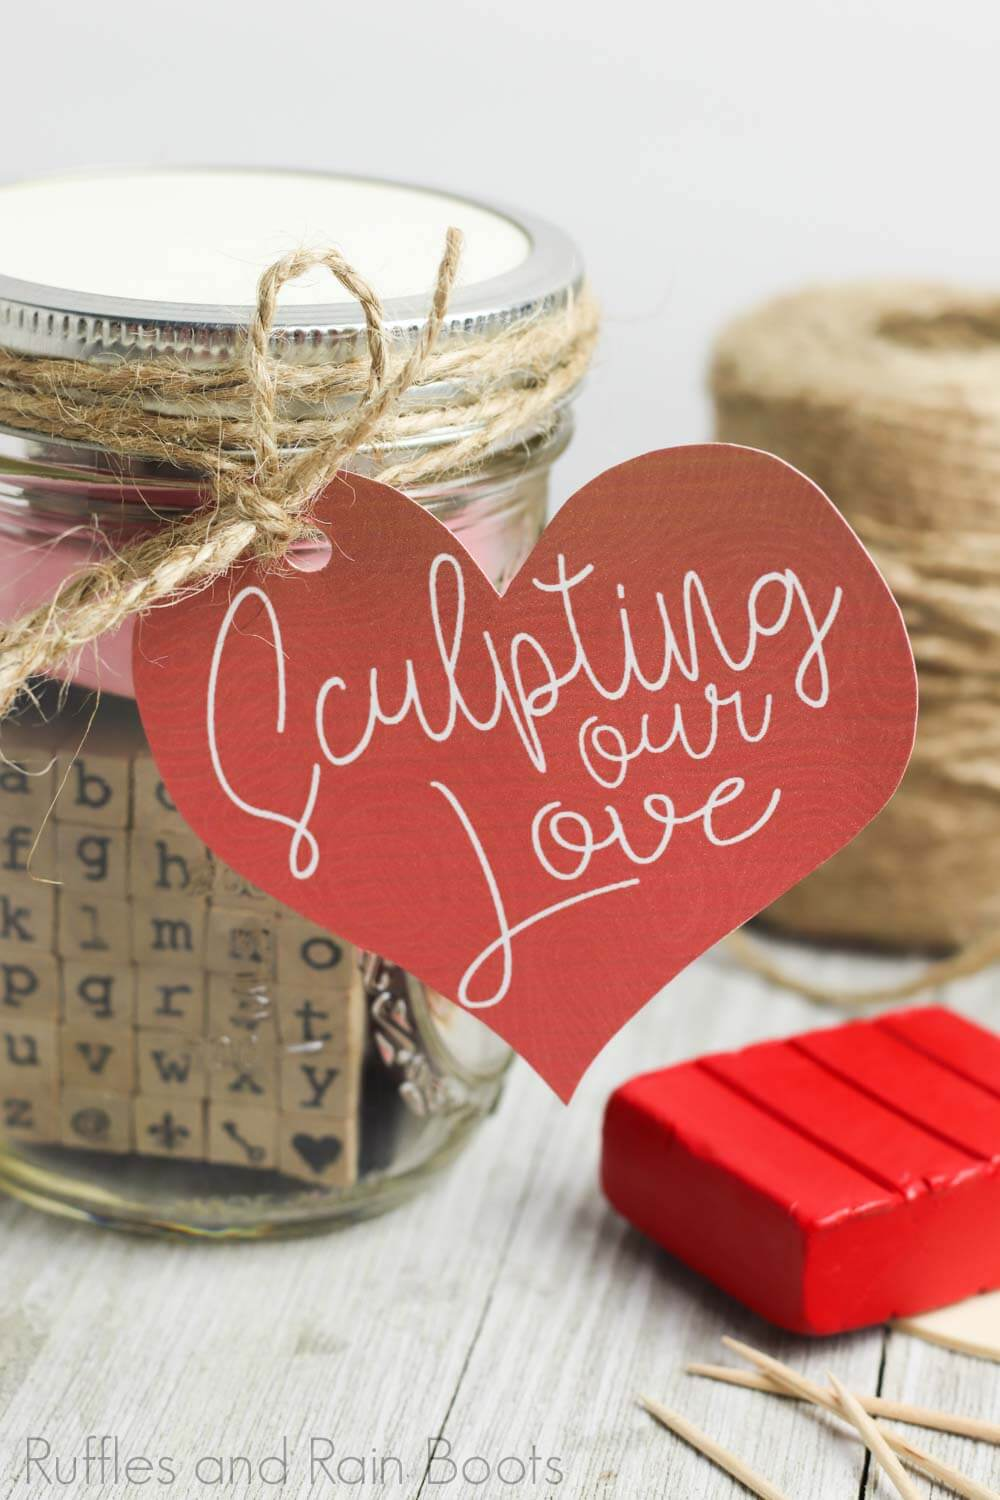 adorable date night idea sculpting night sculpting date night in a jar with red clay and twine on a wooden table with a white background